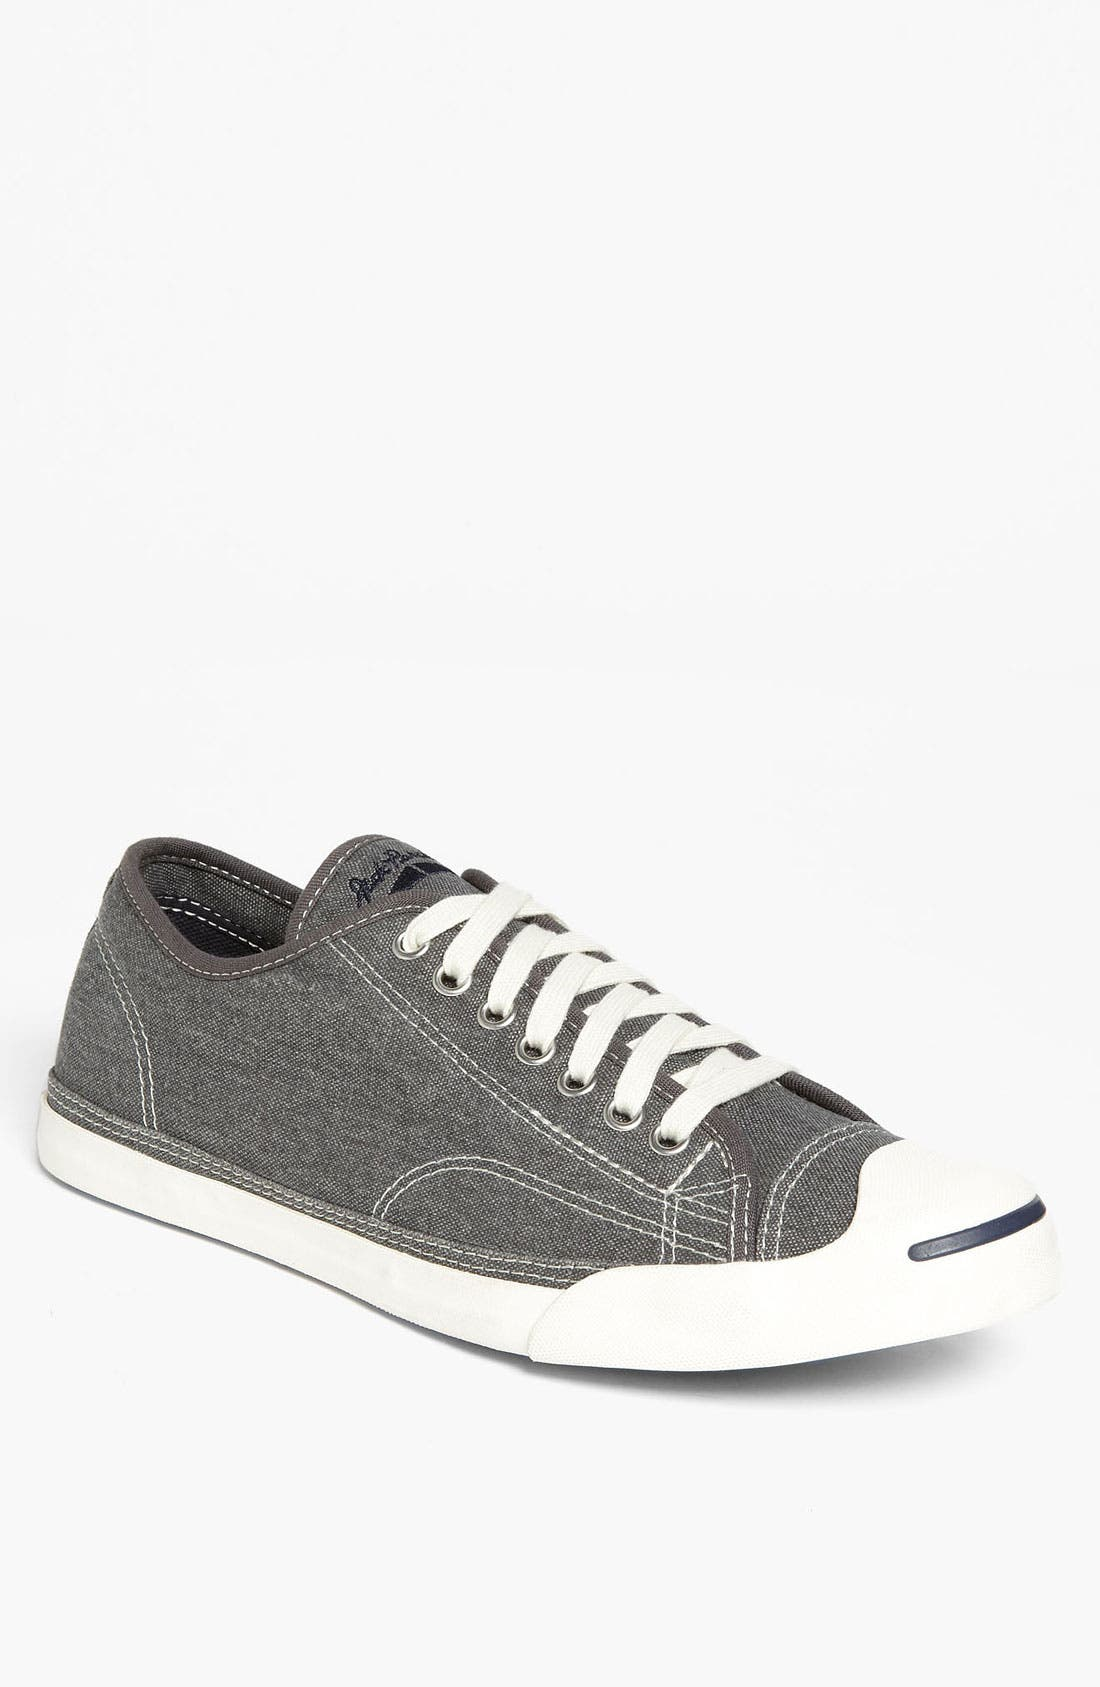 'Jack Purcell LP' Sneaker,                         Main,                         color, Navy